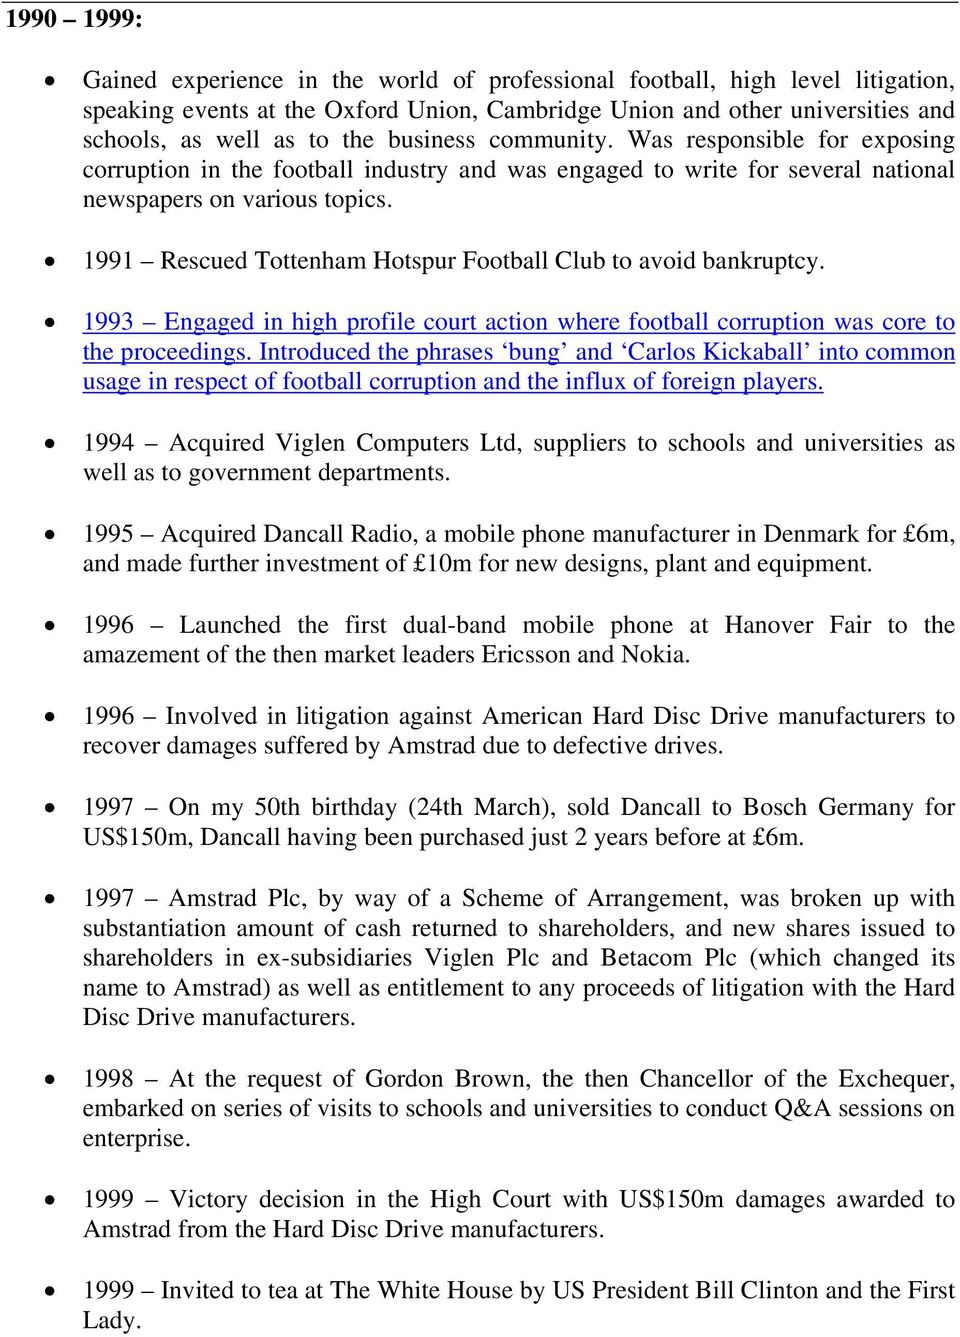 1991 Rescued Tottenham Hotspur Football Club to avoid bankruptcy. 1993 Engaged in high profile court action where football corruption was core to the proceedings.